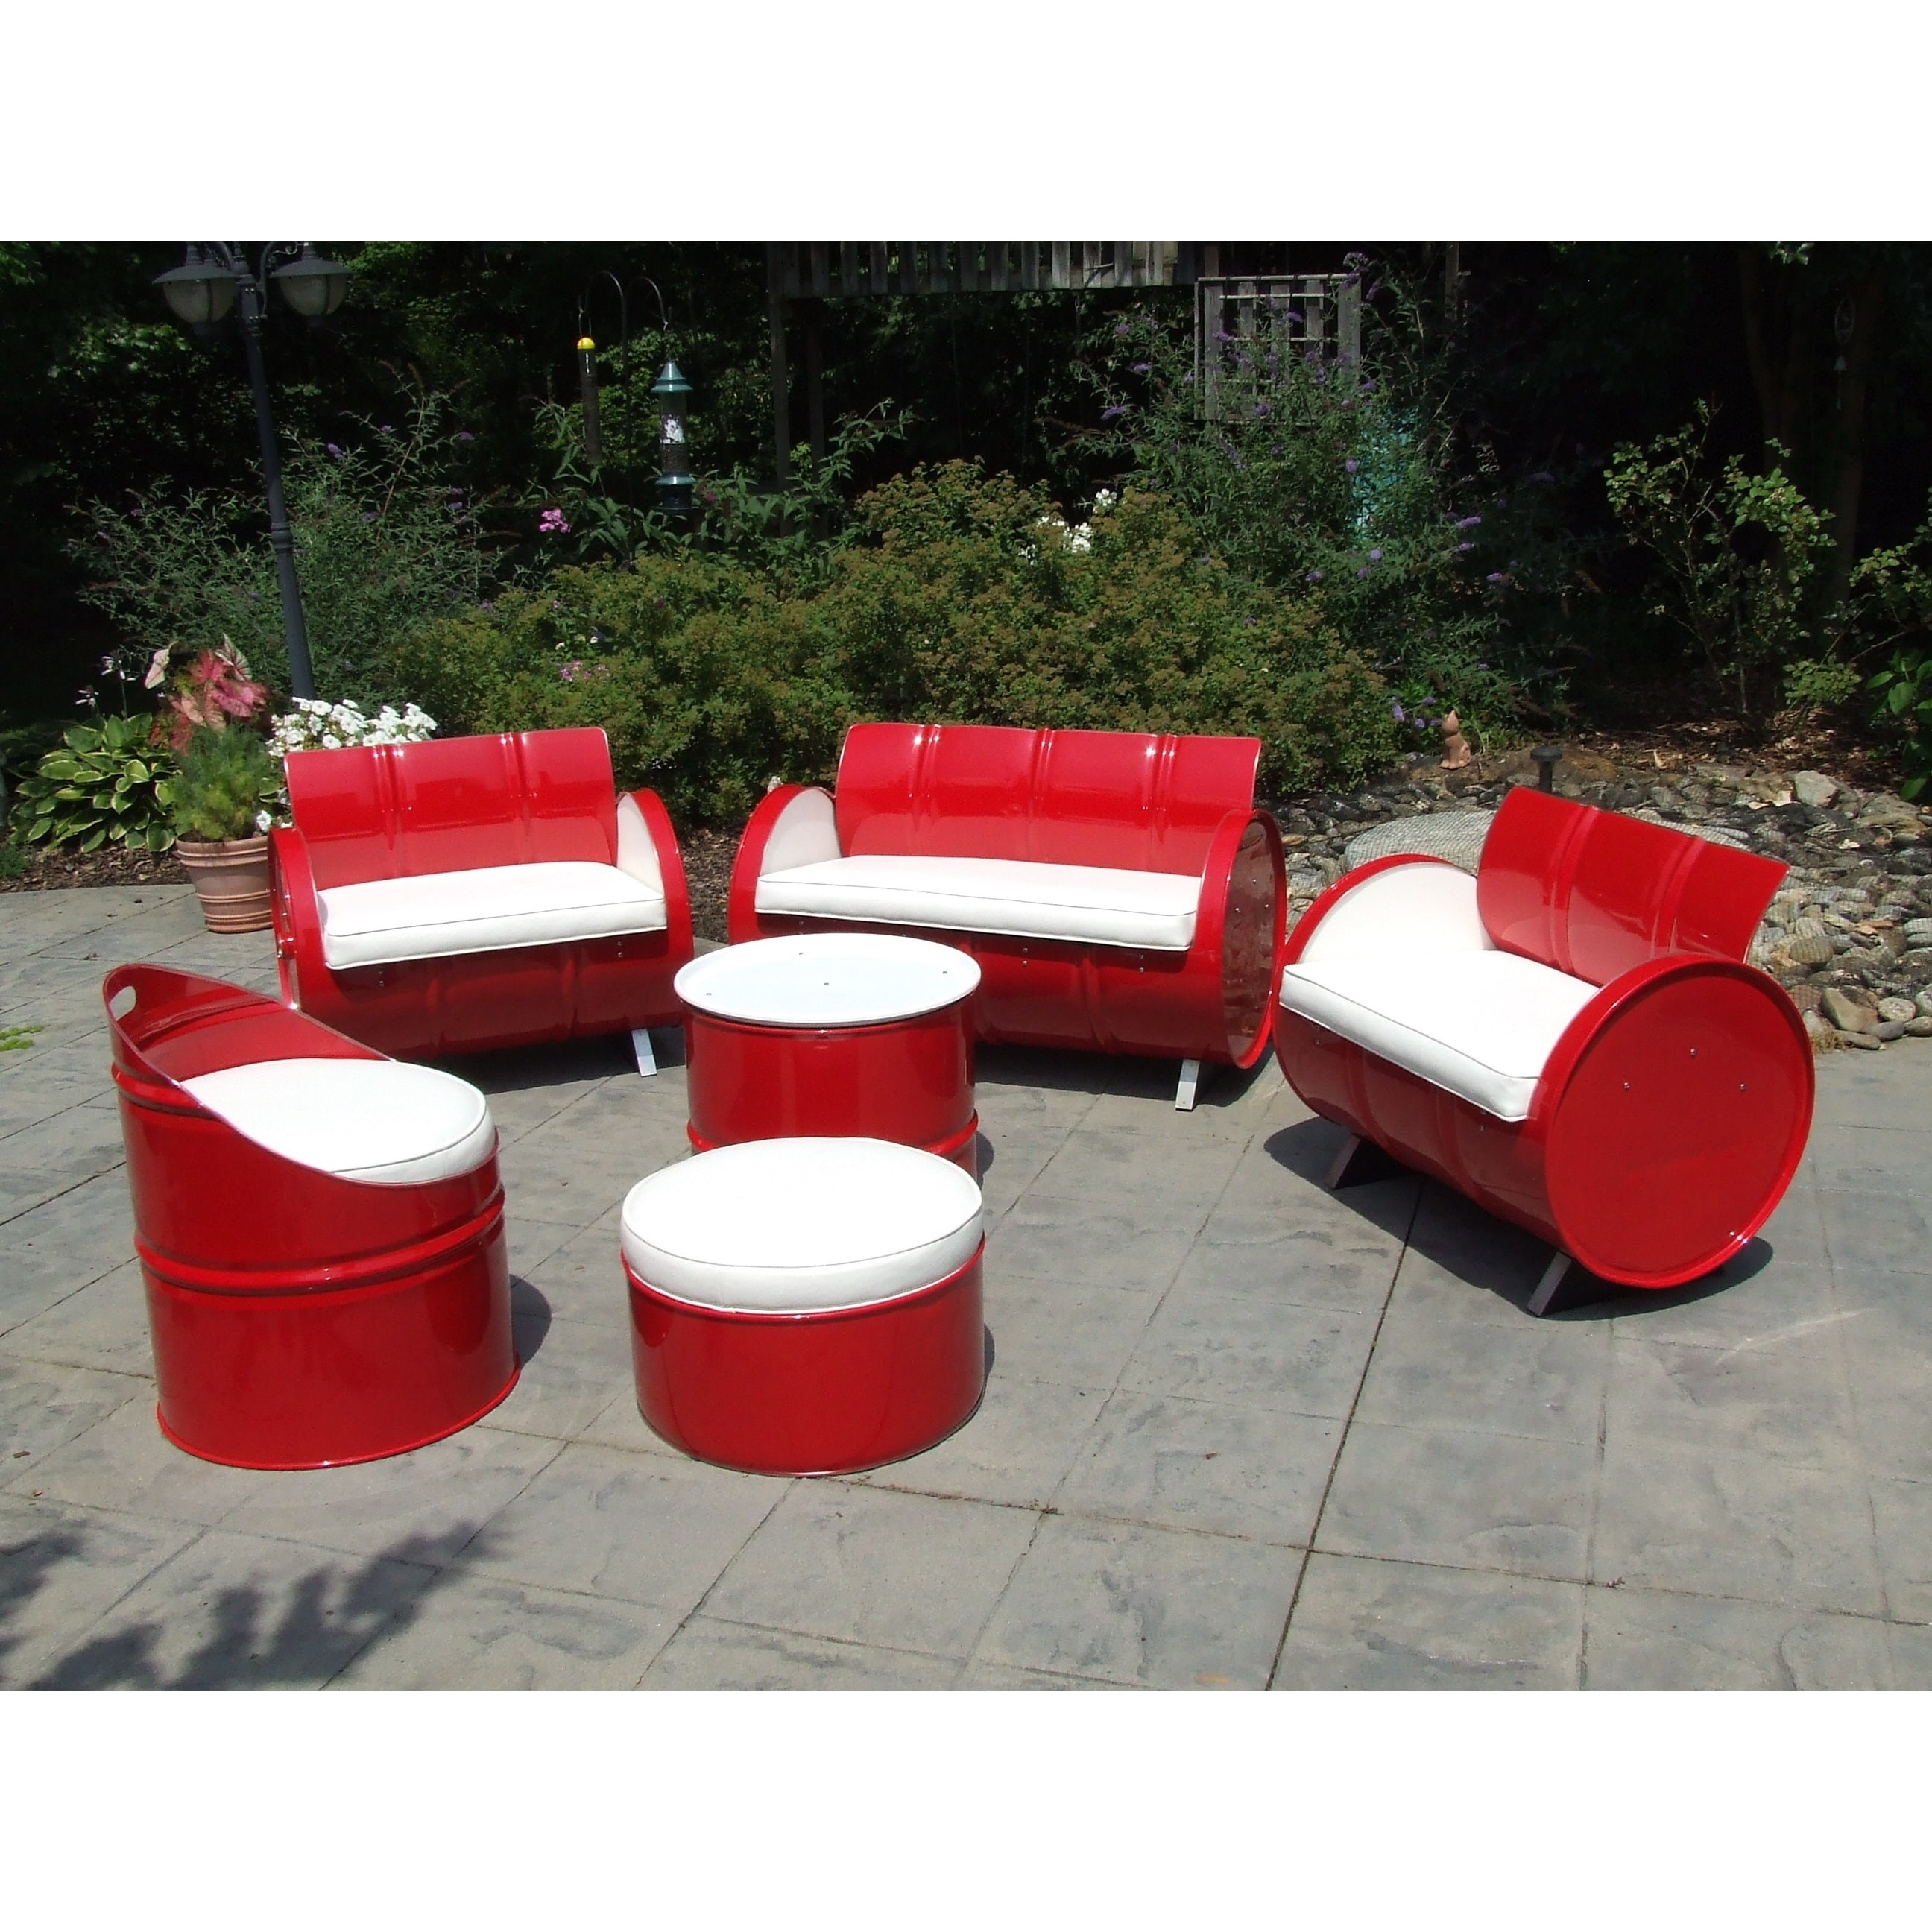 SS 396 Indoor/ Outdoor 6-piece Red and White Conversation Set Plus (Red, White)